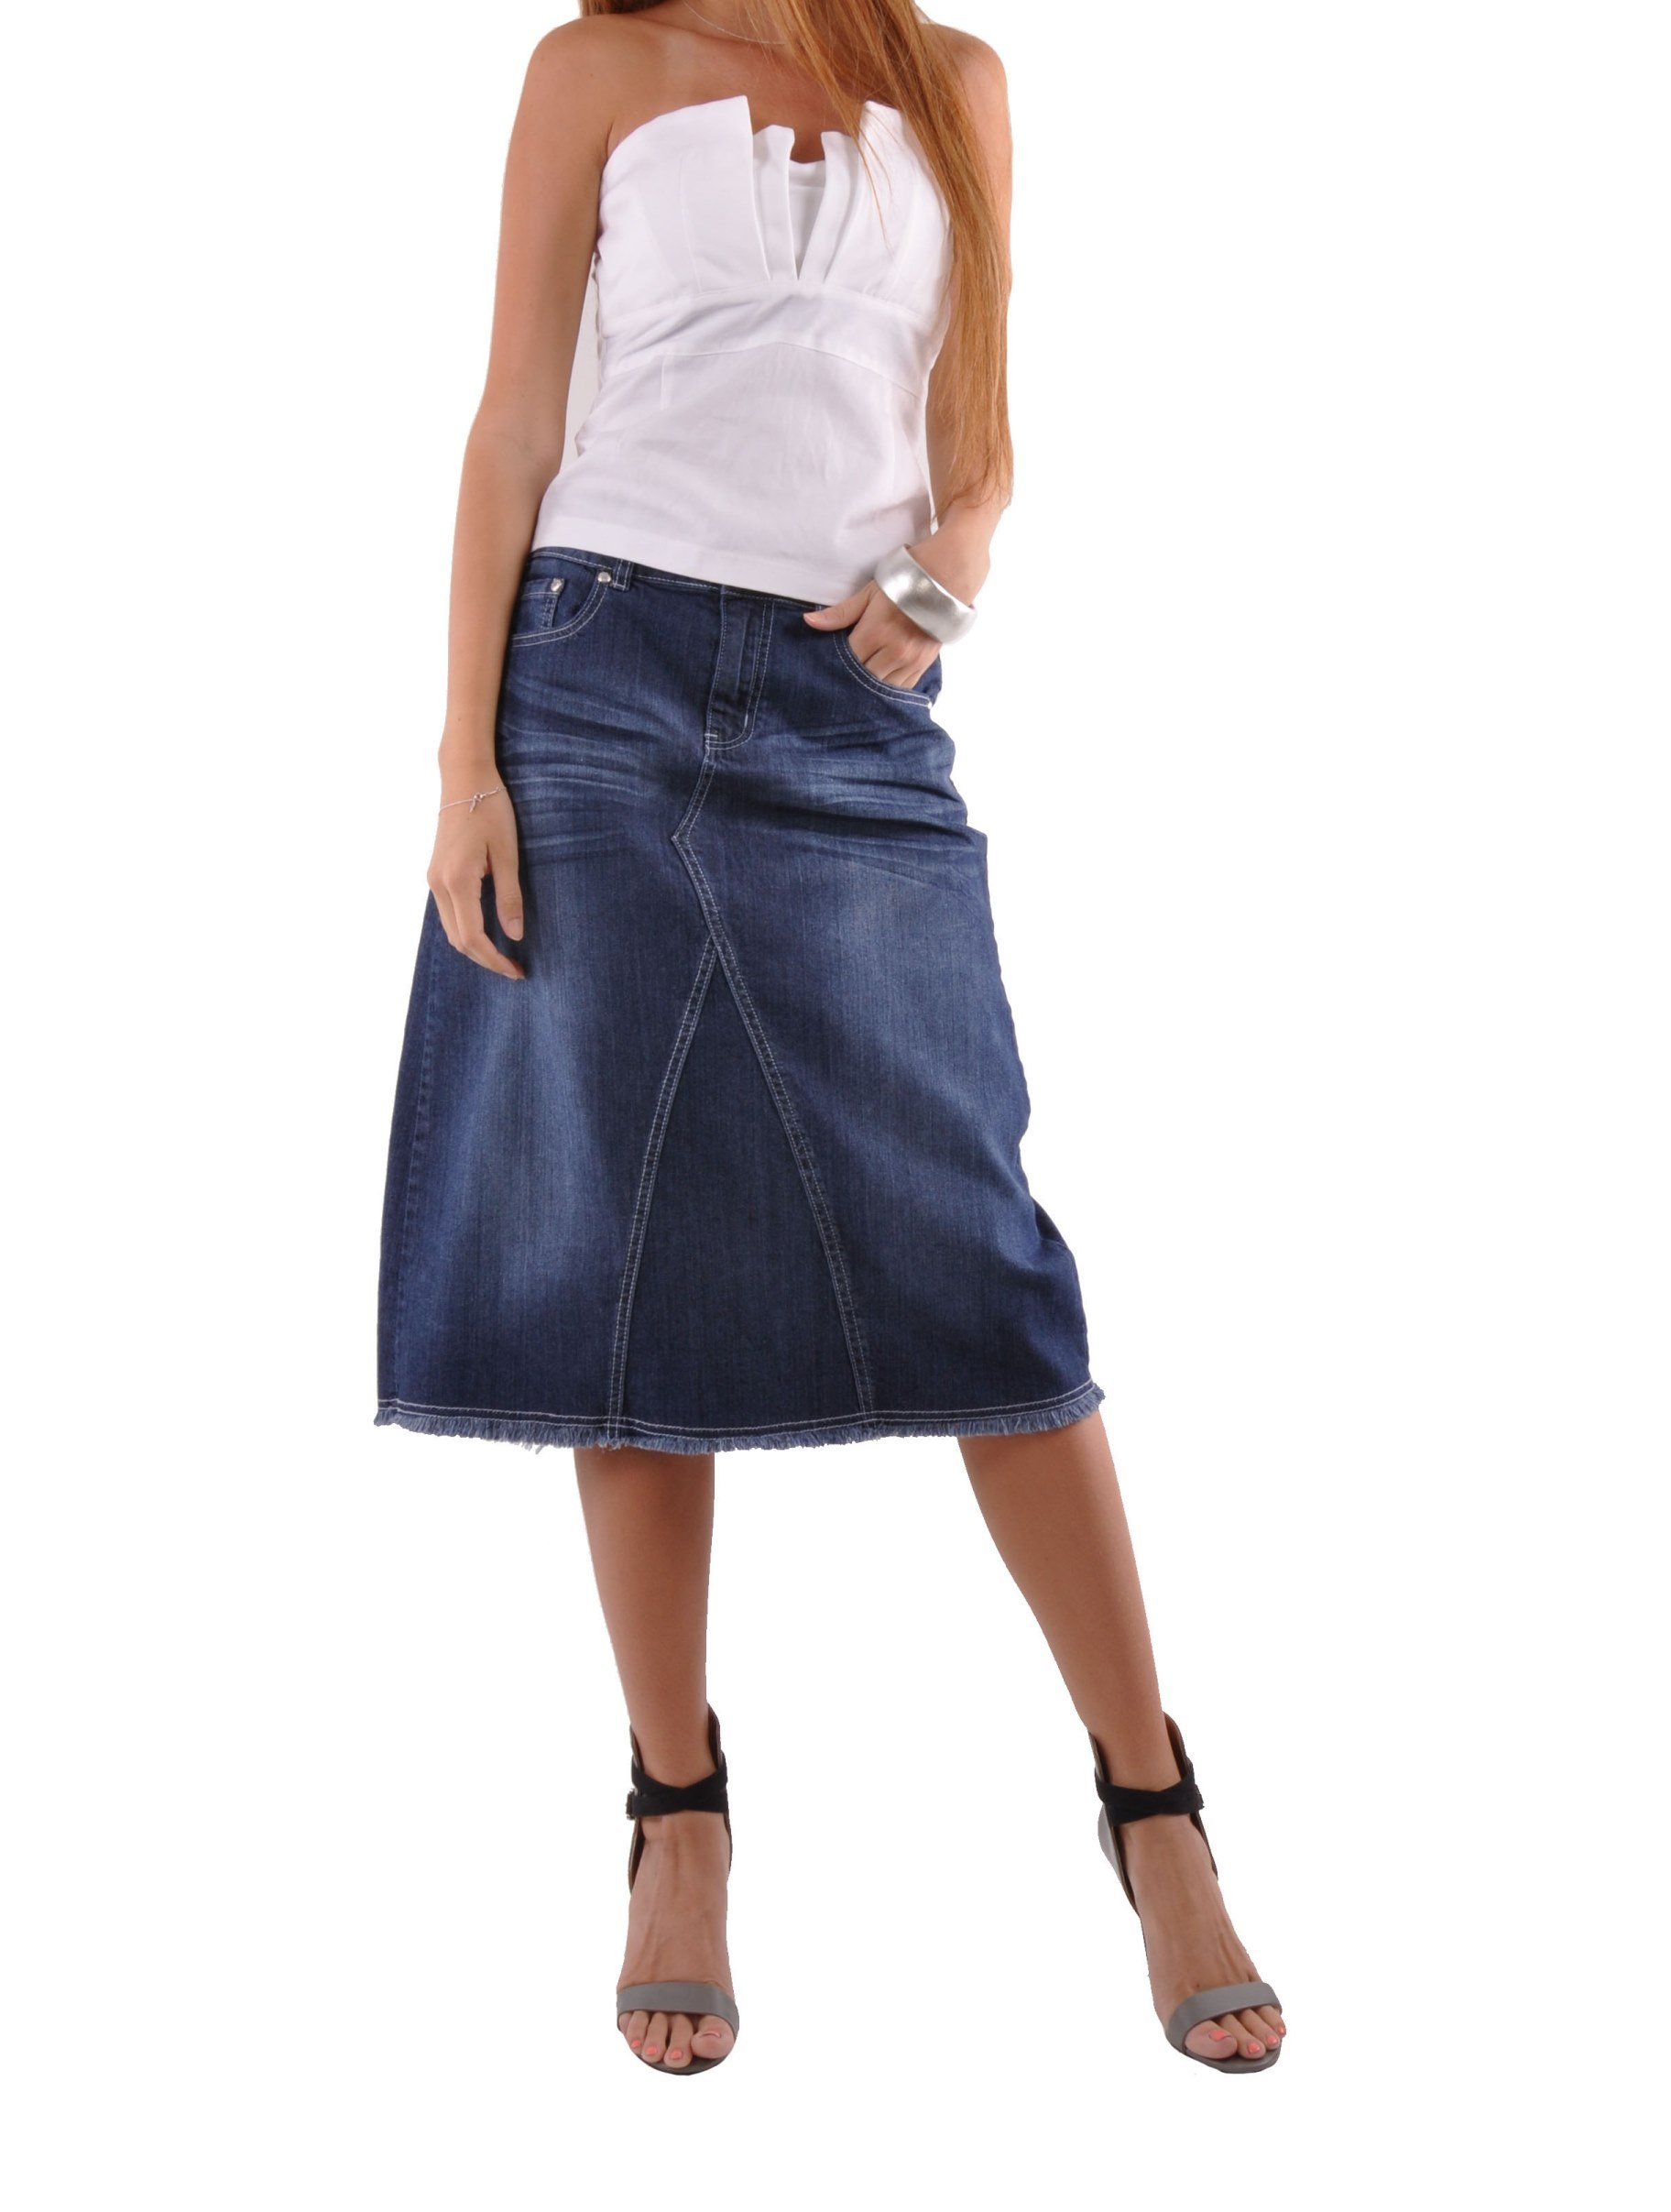 Style J Country Chic Denim Skirt-Blue-28(8)